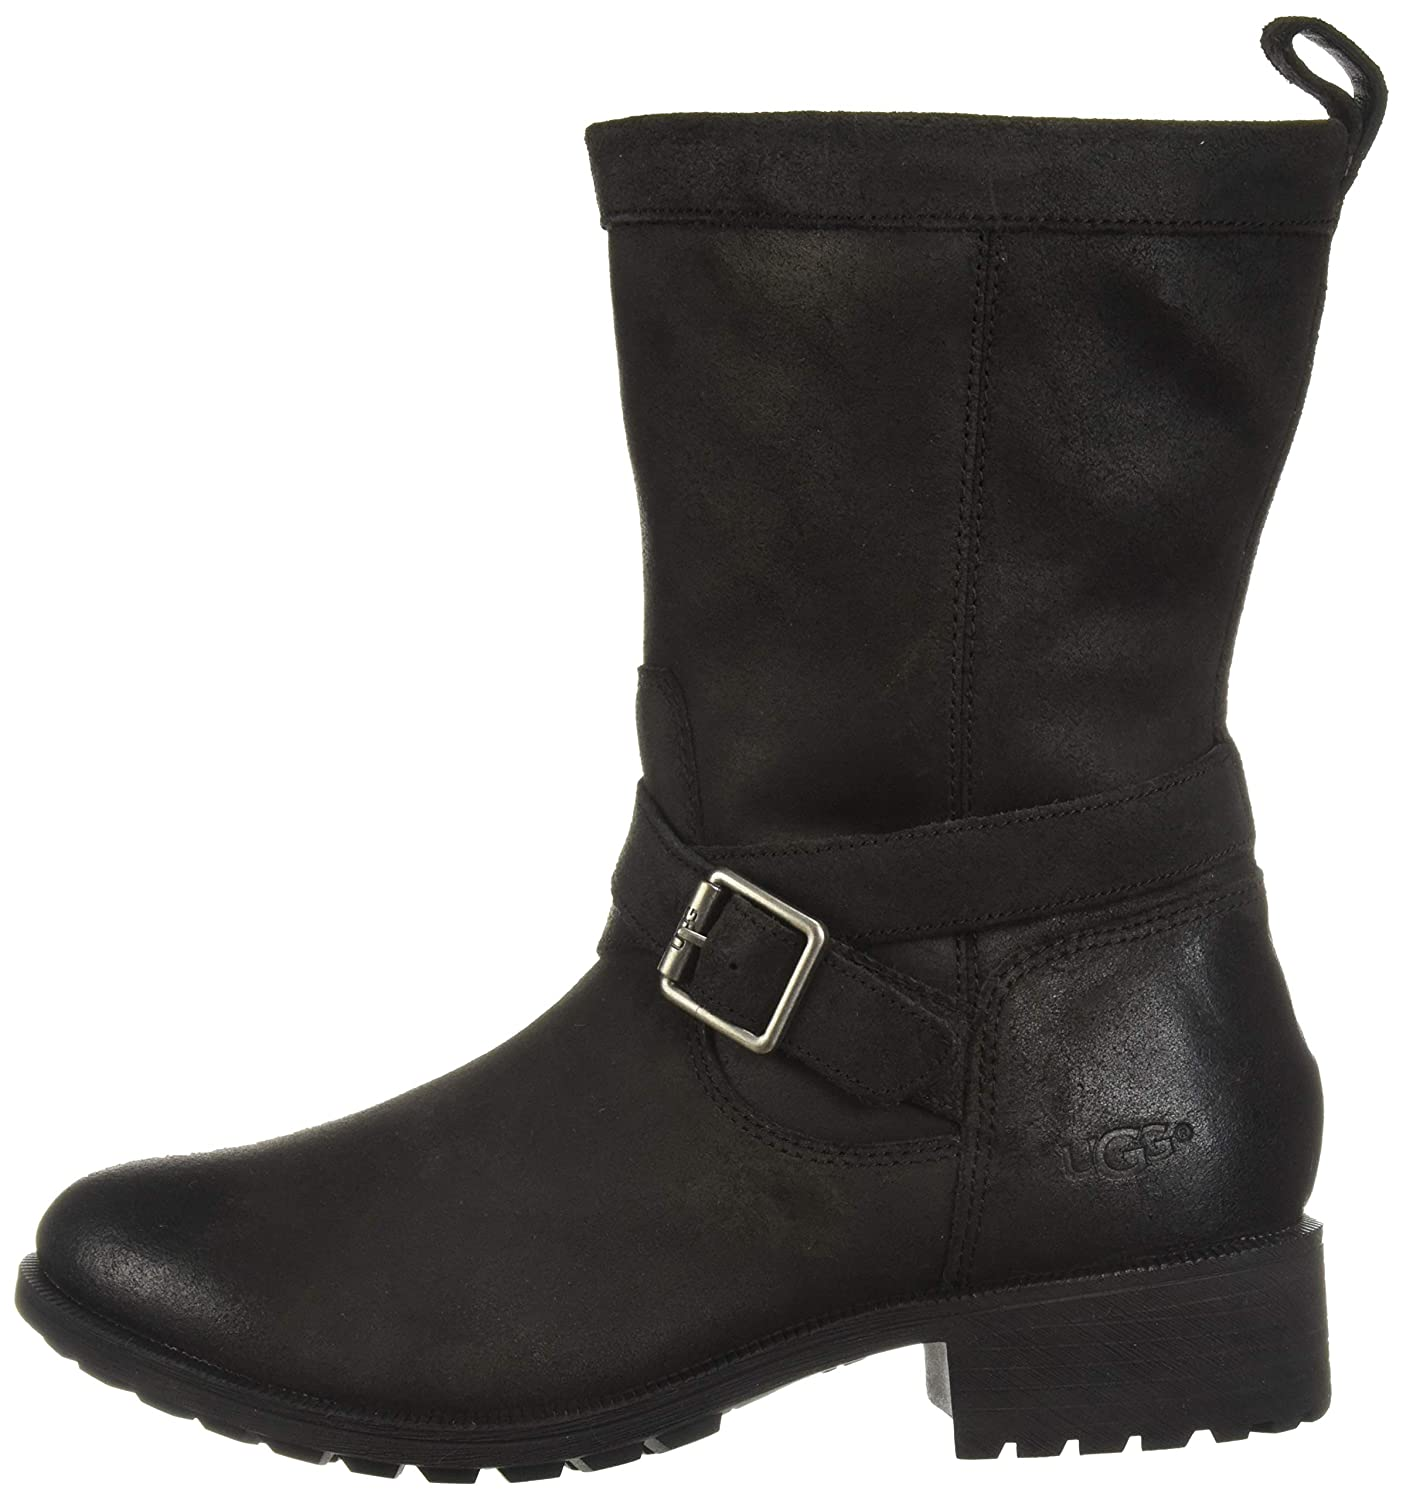 c8fa3025d7c UGG Women's W Glendale Boot Fashion, Black, 6.5 M US